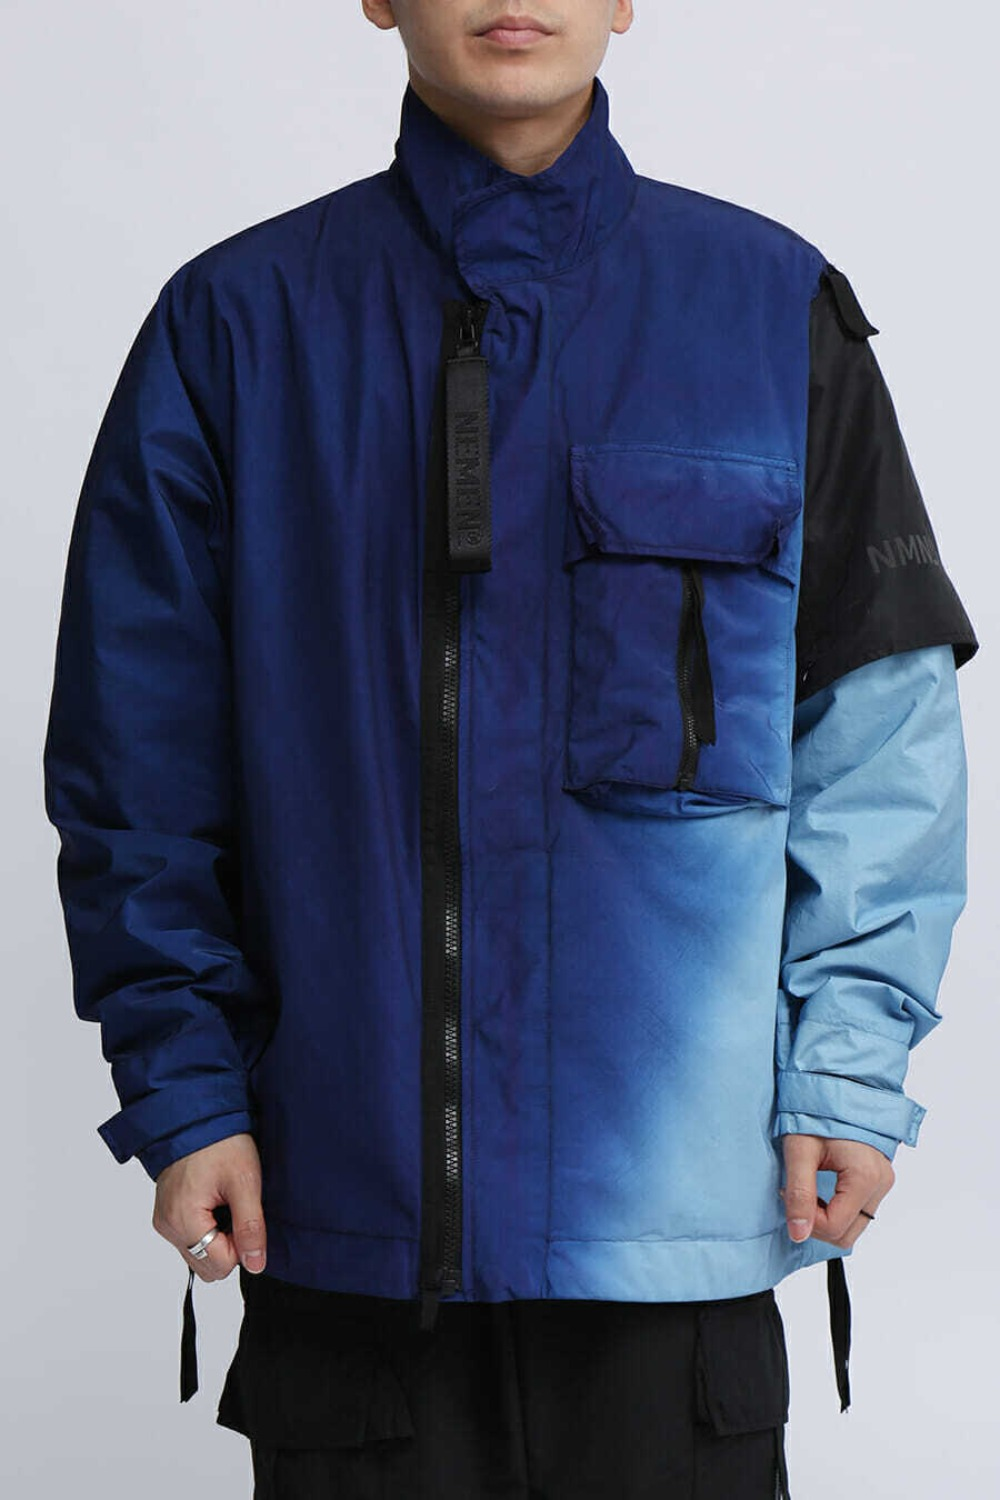 WOVEN ZEPHYR 3L JACKET DIPPING BLUE